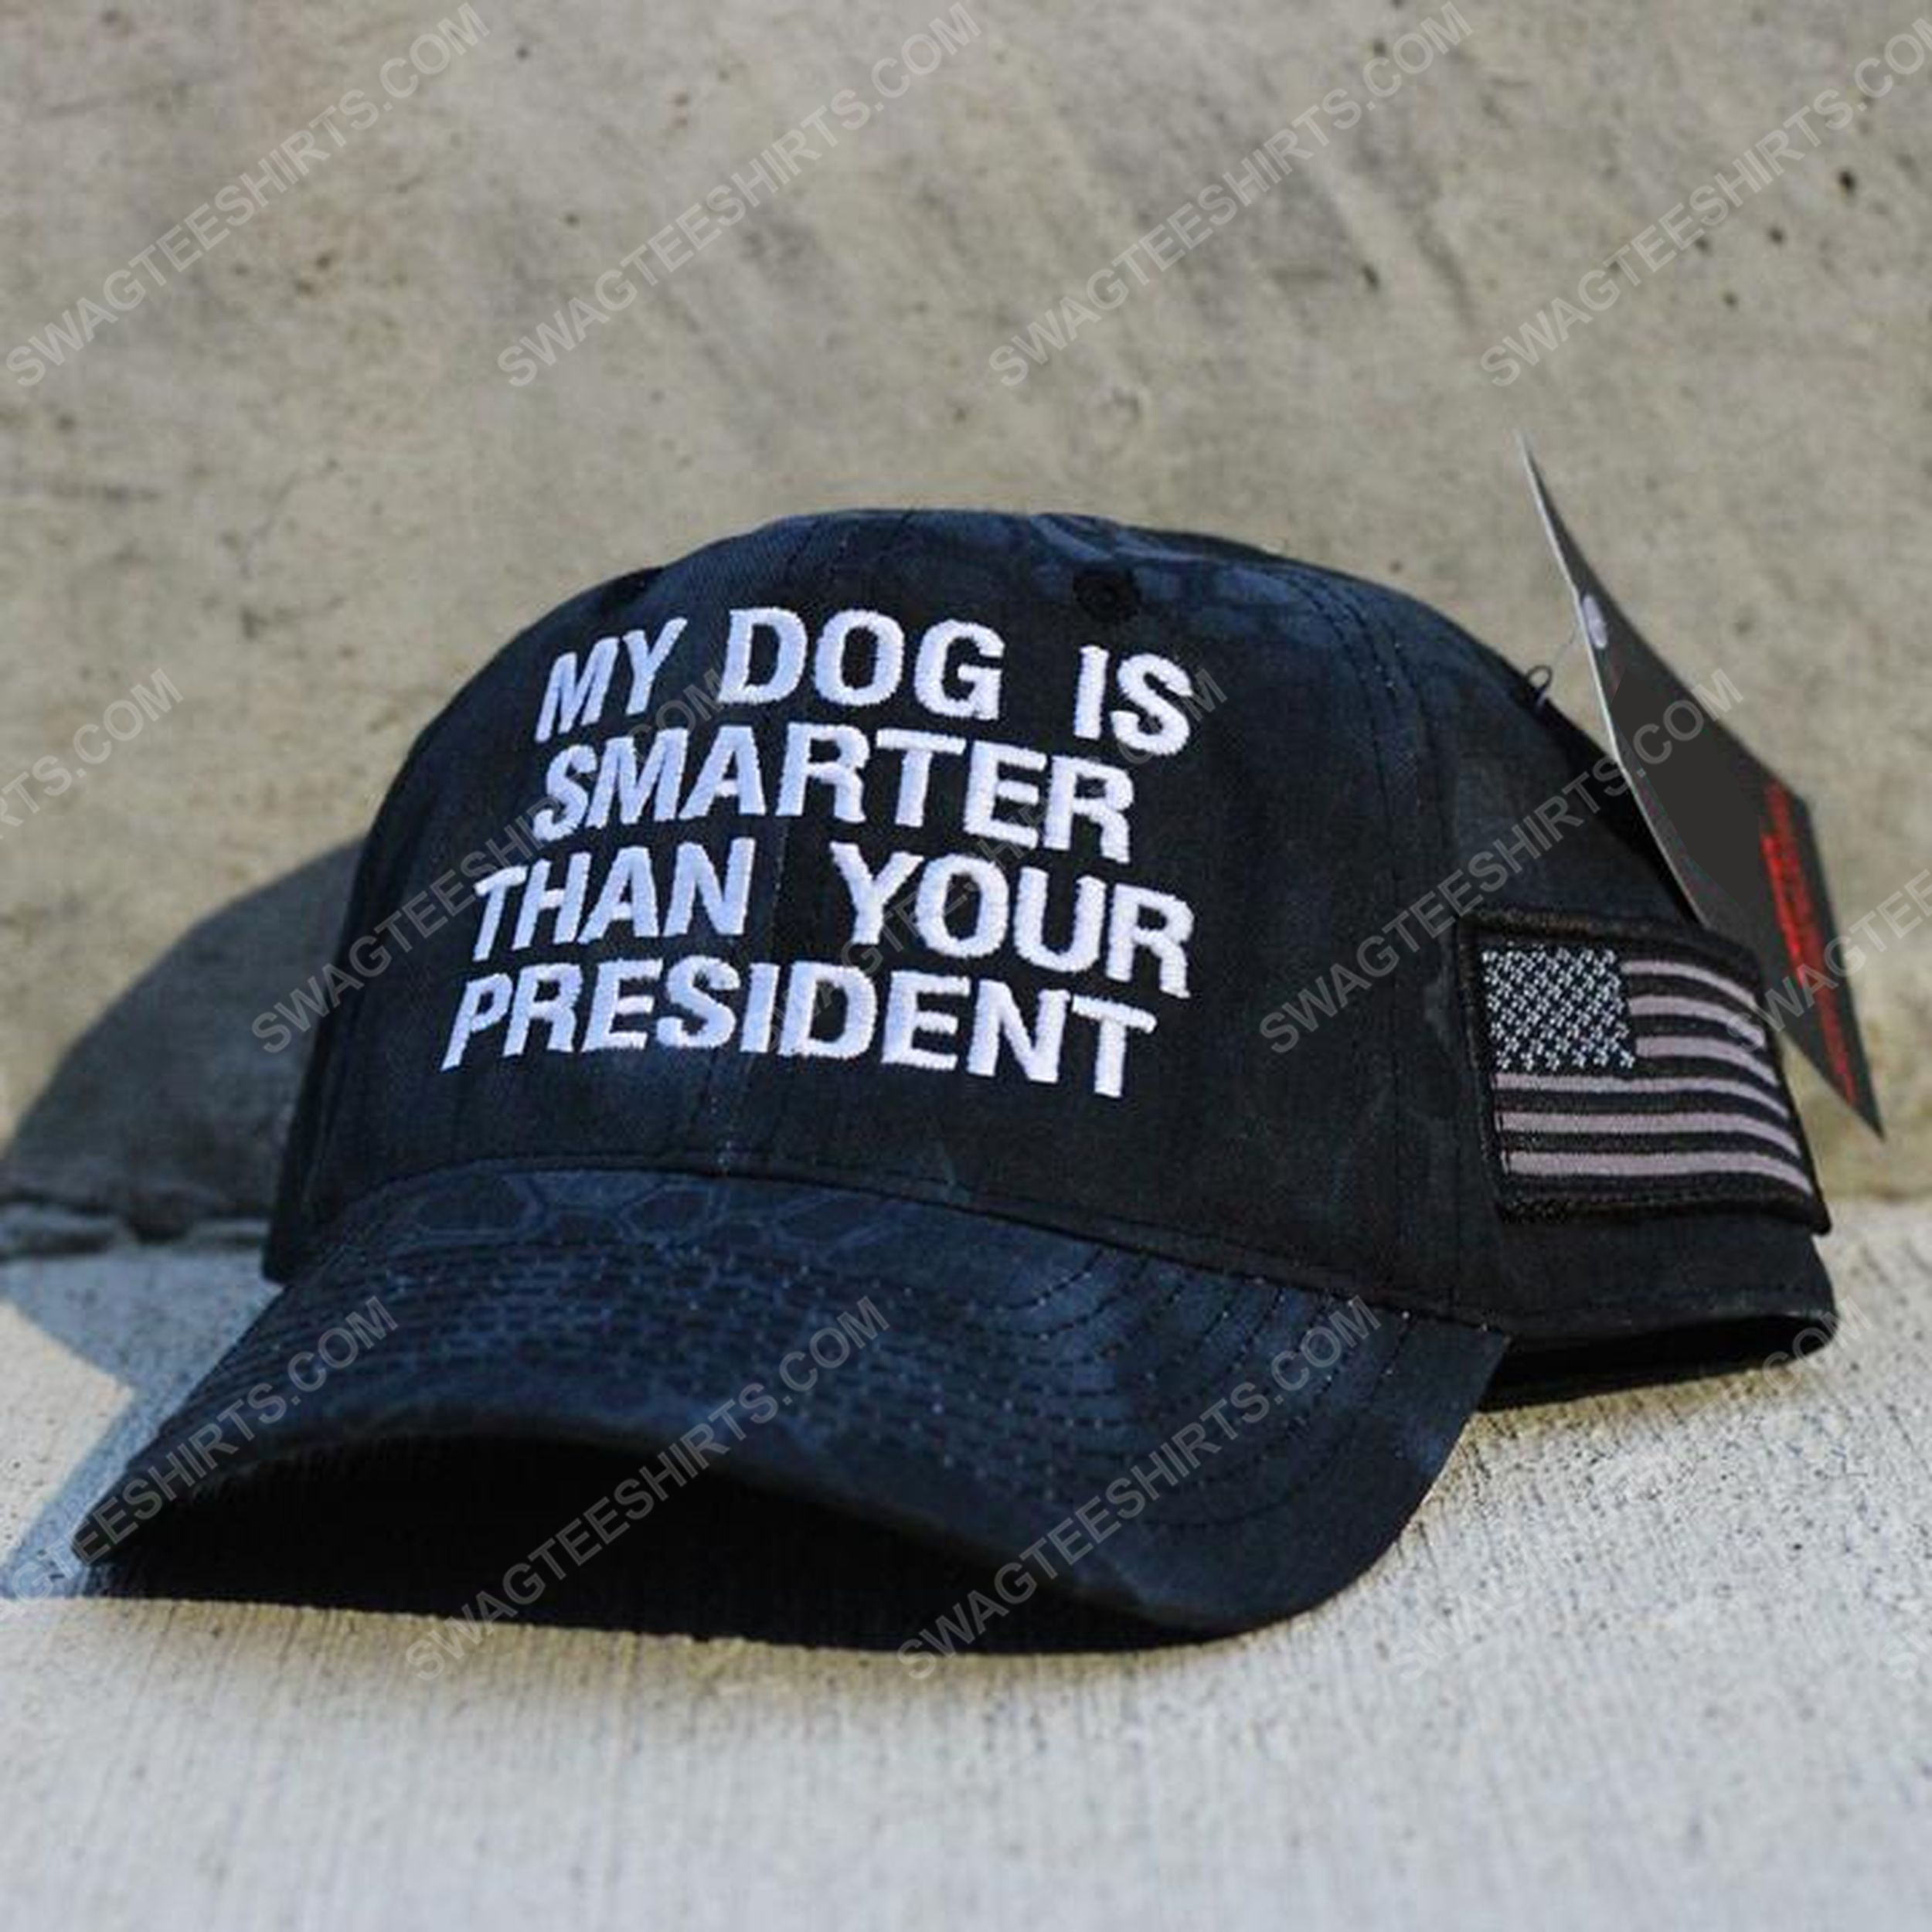 My dog is smarter than your president american flag full print classic hat 1 - Copy